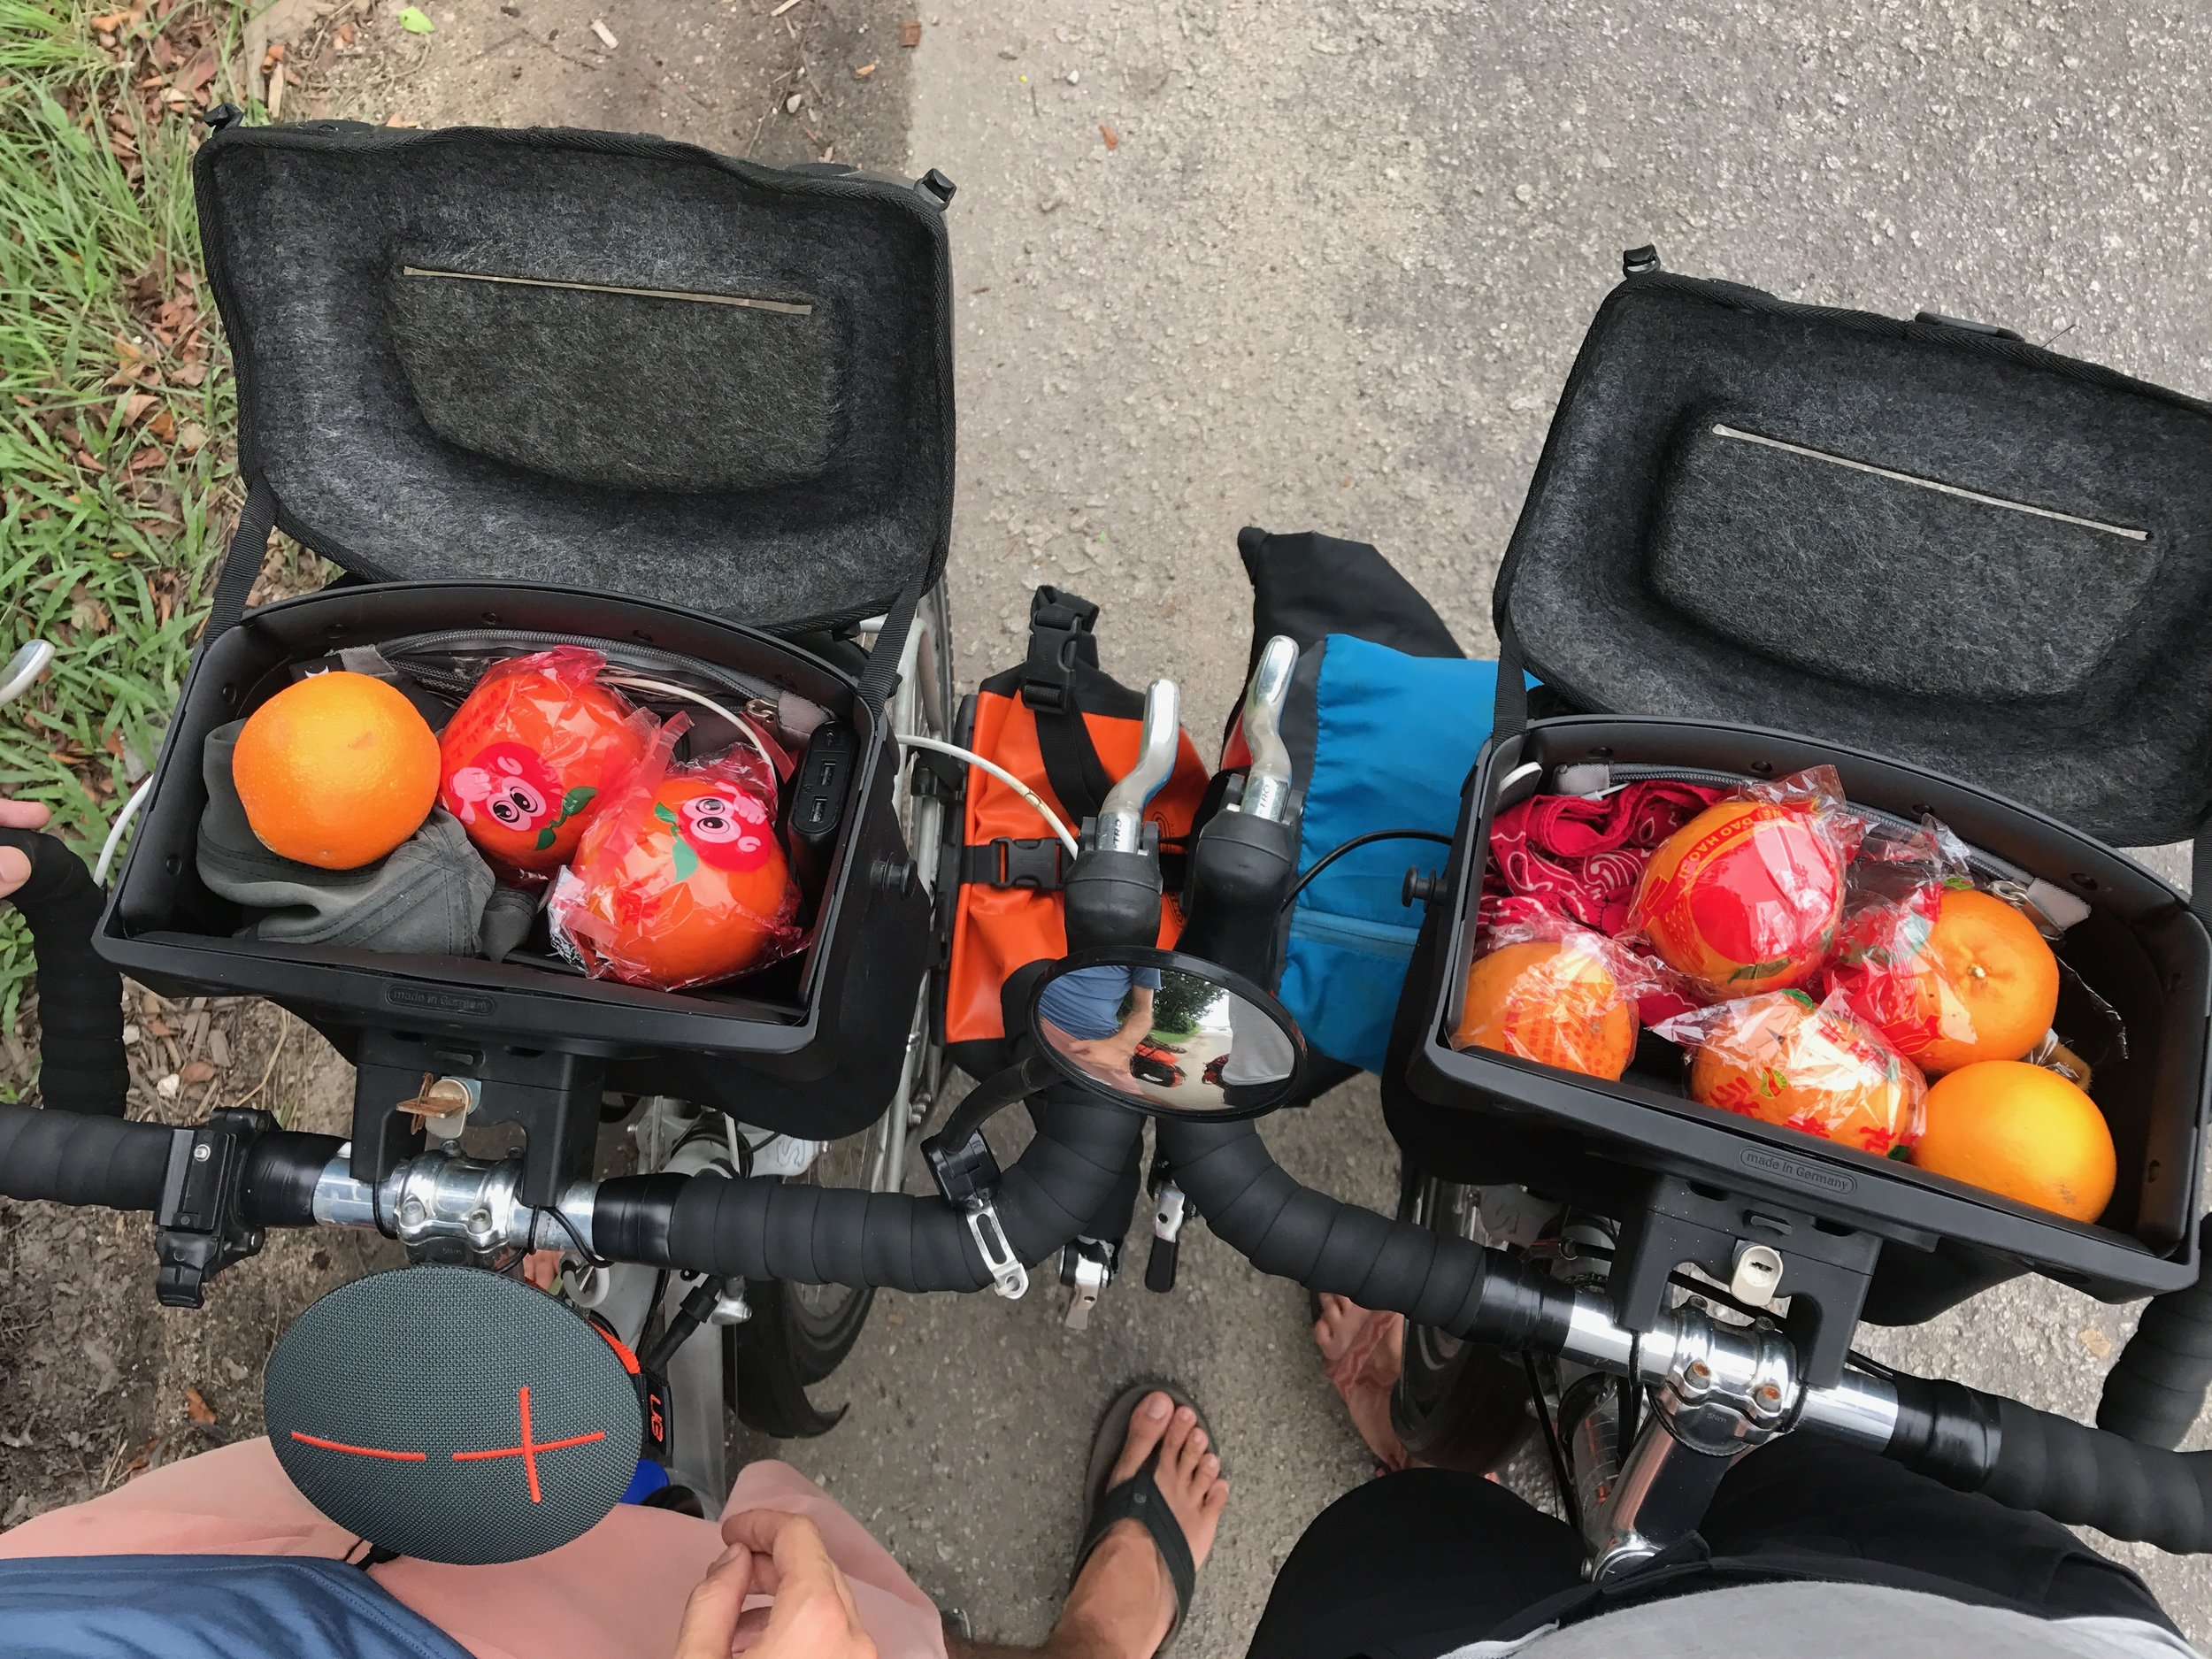 So many mandarins! People have been coming up to us non-stop for the last few days and offering us mandarins and wishing us a happy (Chinese) new year. We might have to start giving some out ourselves if this trend continues. Either way, we won't be getting scurvy on this trip.